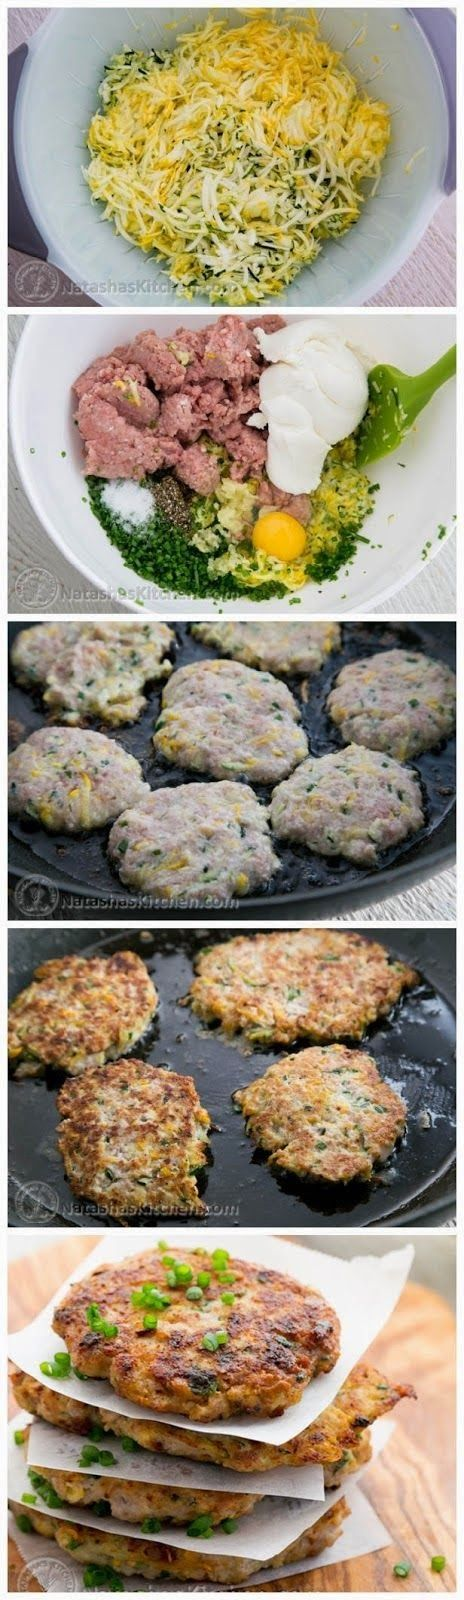 Imagine if you will that a katleta (meat patty) married a zucchini fritter and they had babies = Chicken Zucchini Fritters. I'm n...